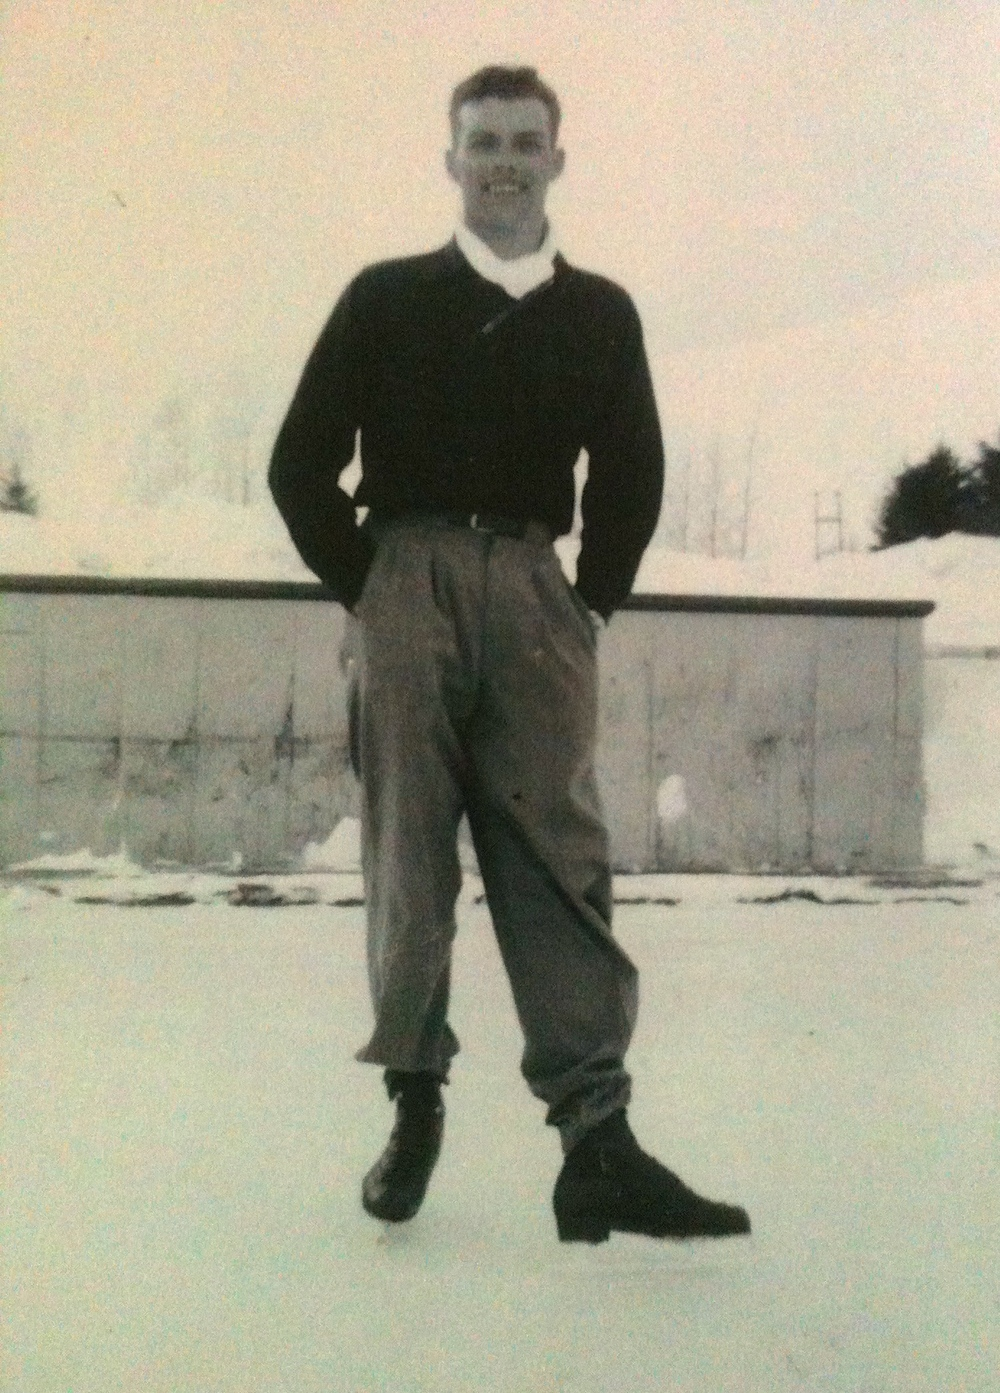 Dad on ice skates in his youth